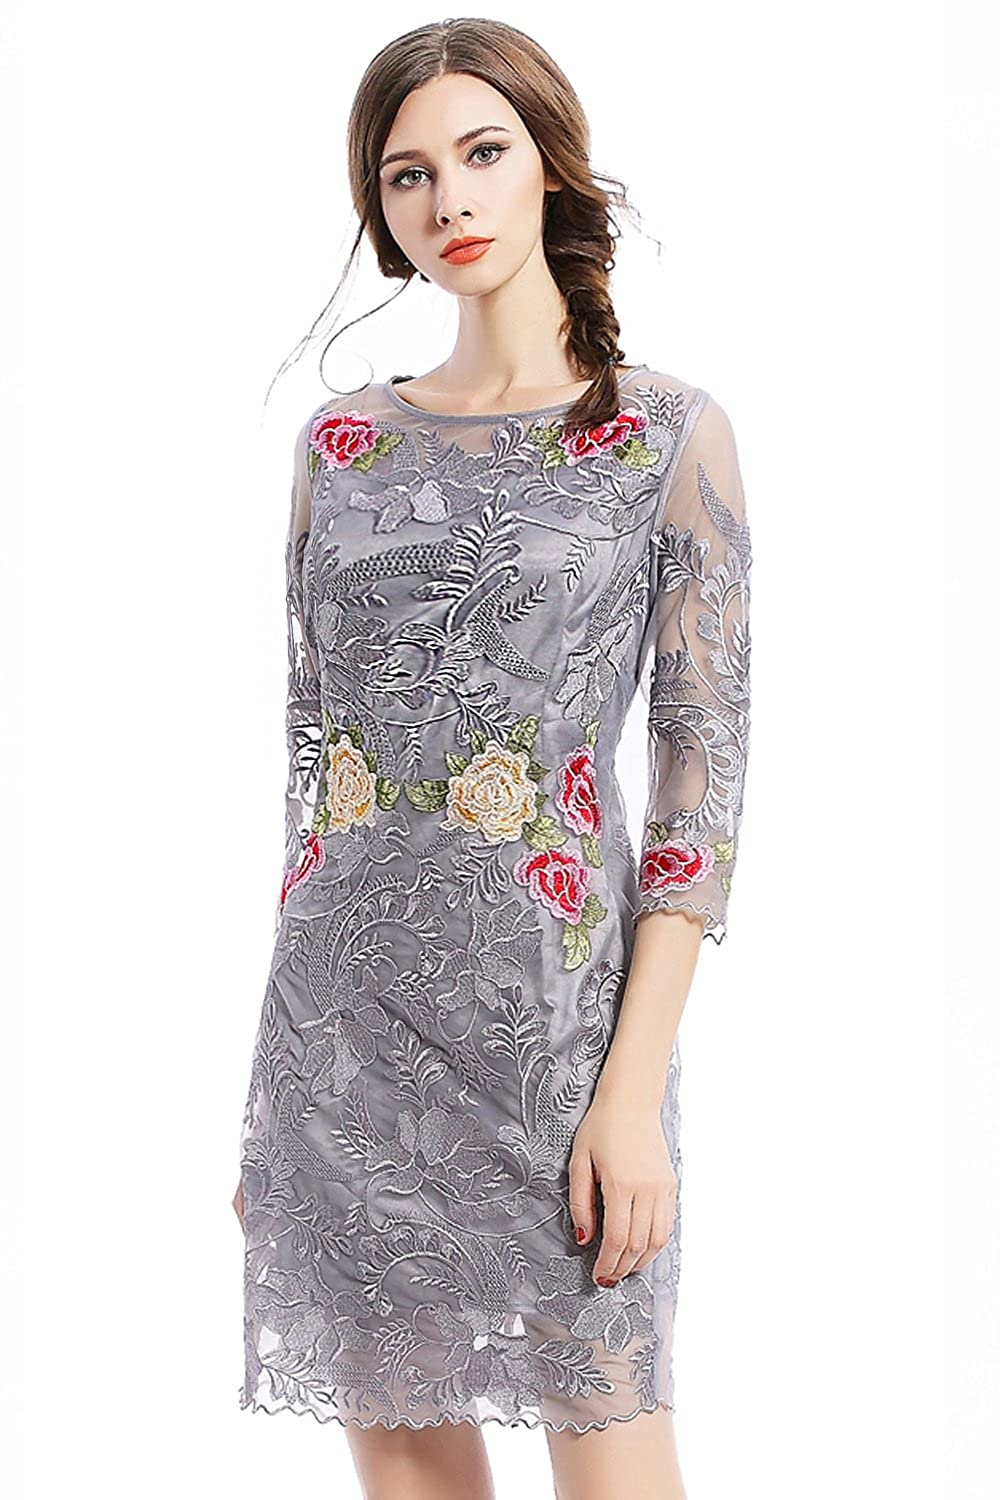 Joy EnvyLand Women Floral Sheath Cocktail Prom Party Embroidered Bodycon Dress